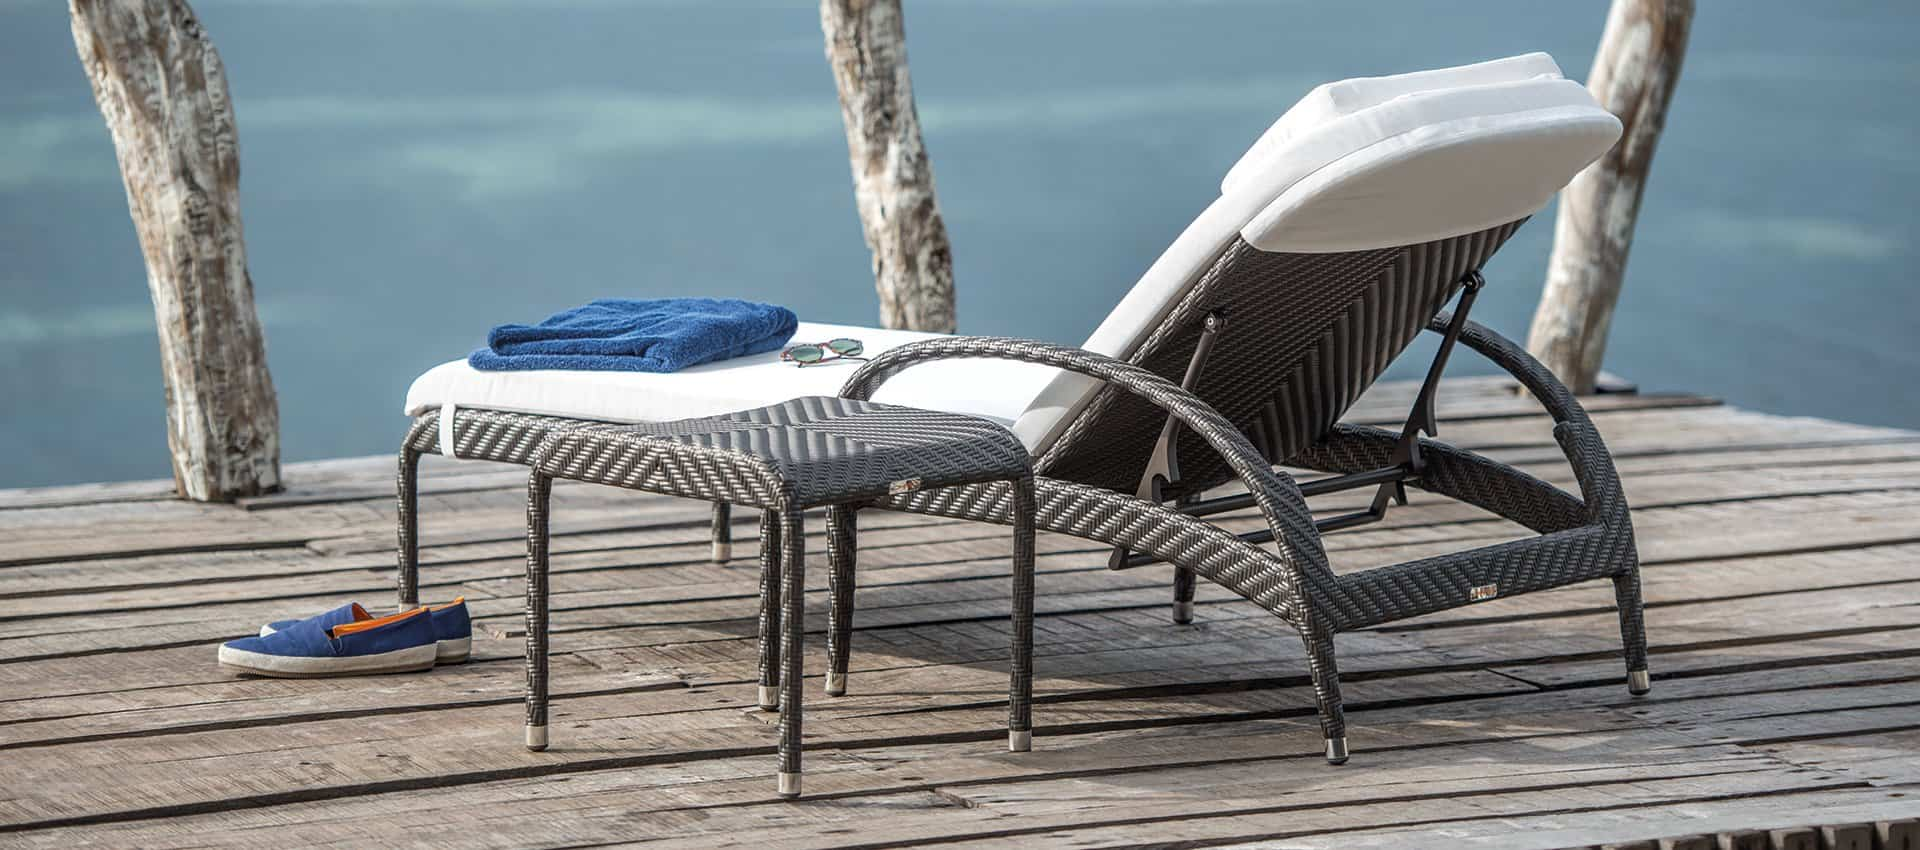 The Outdoor Furnitures Collection International Interiors - Outdoor Furniture Clearance Benowa